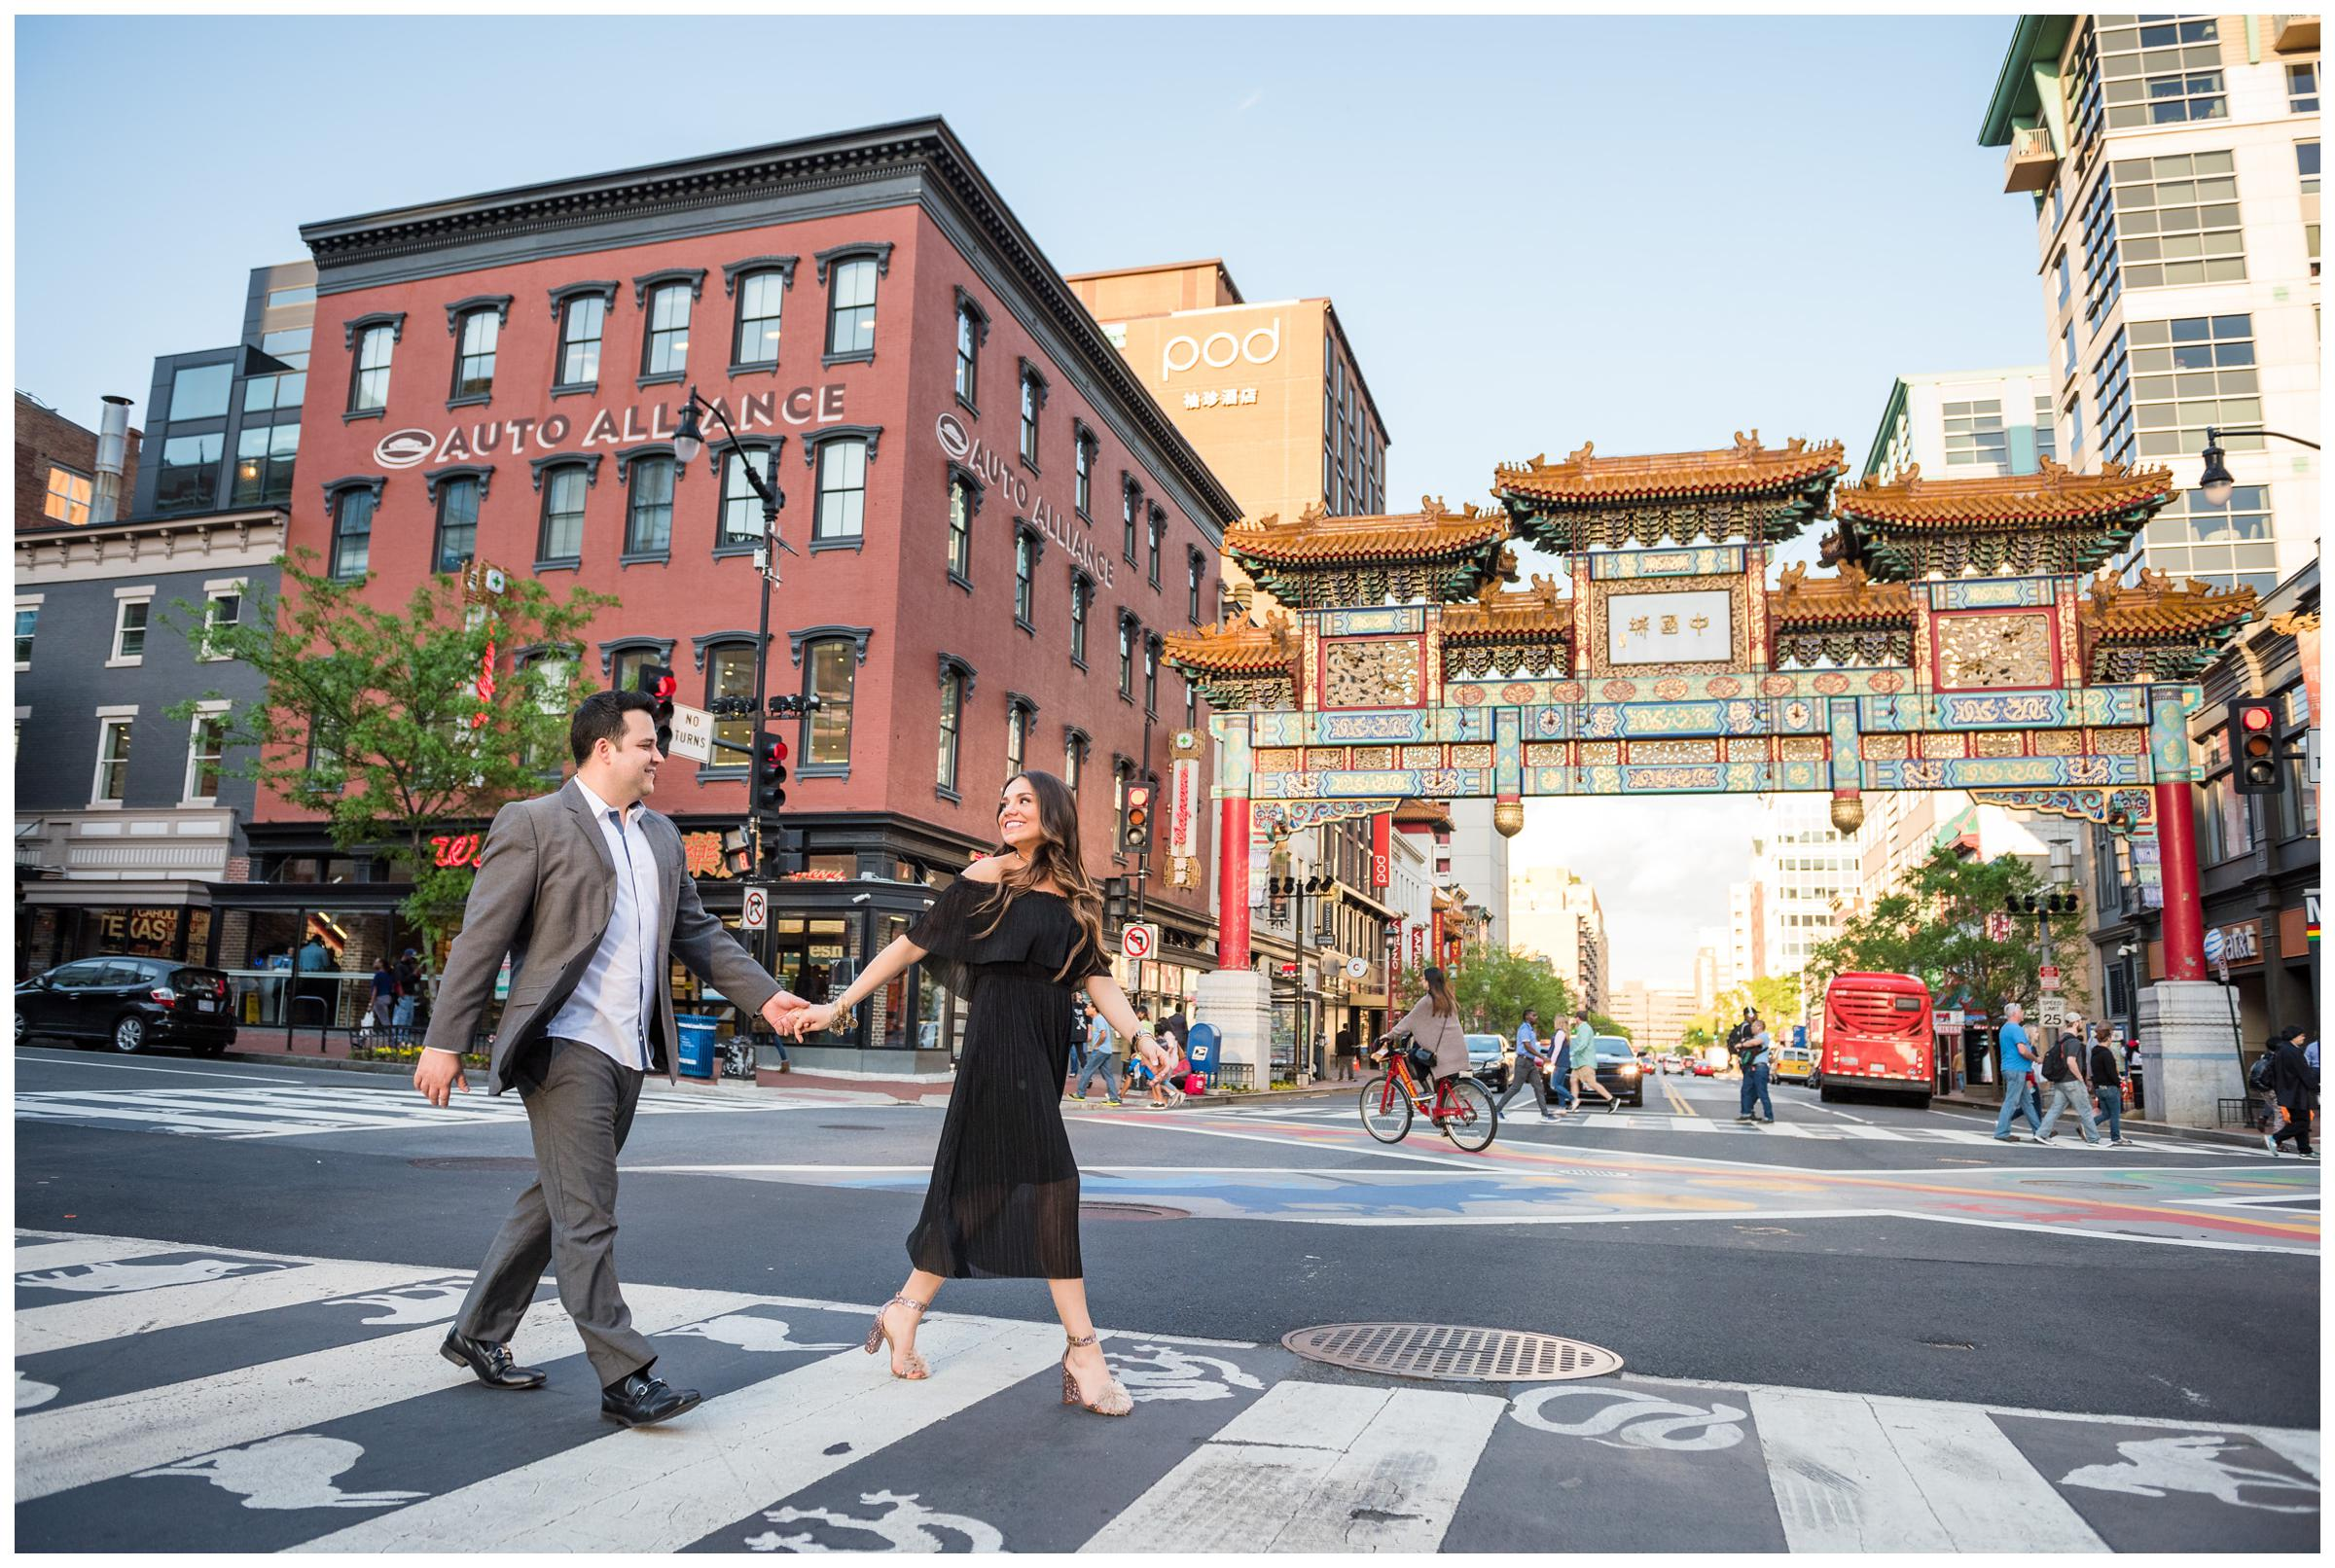 engagement photos at Friendship Archway in Chinatown, Washington, D.C.